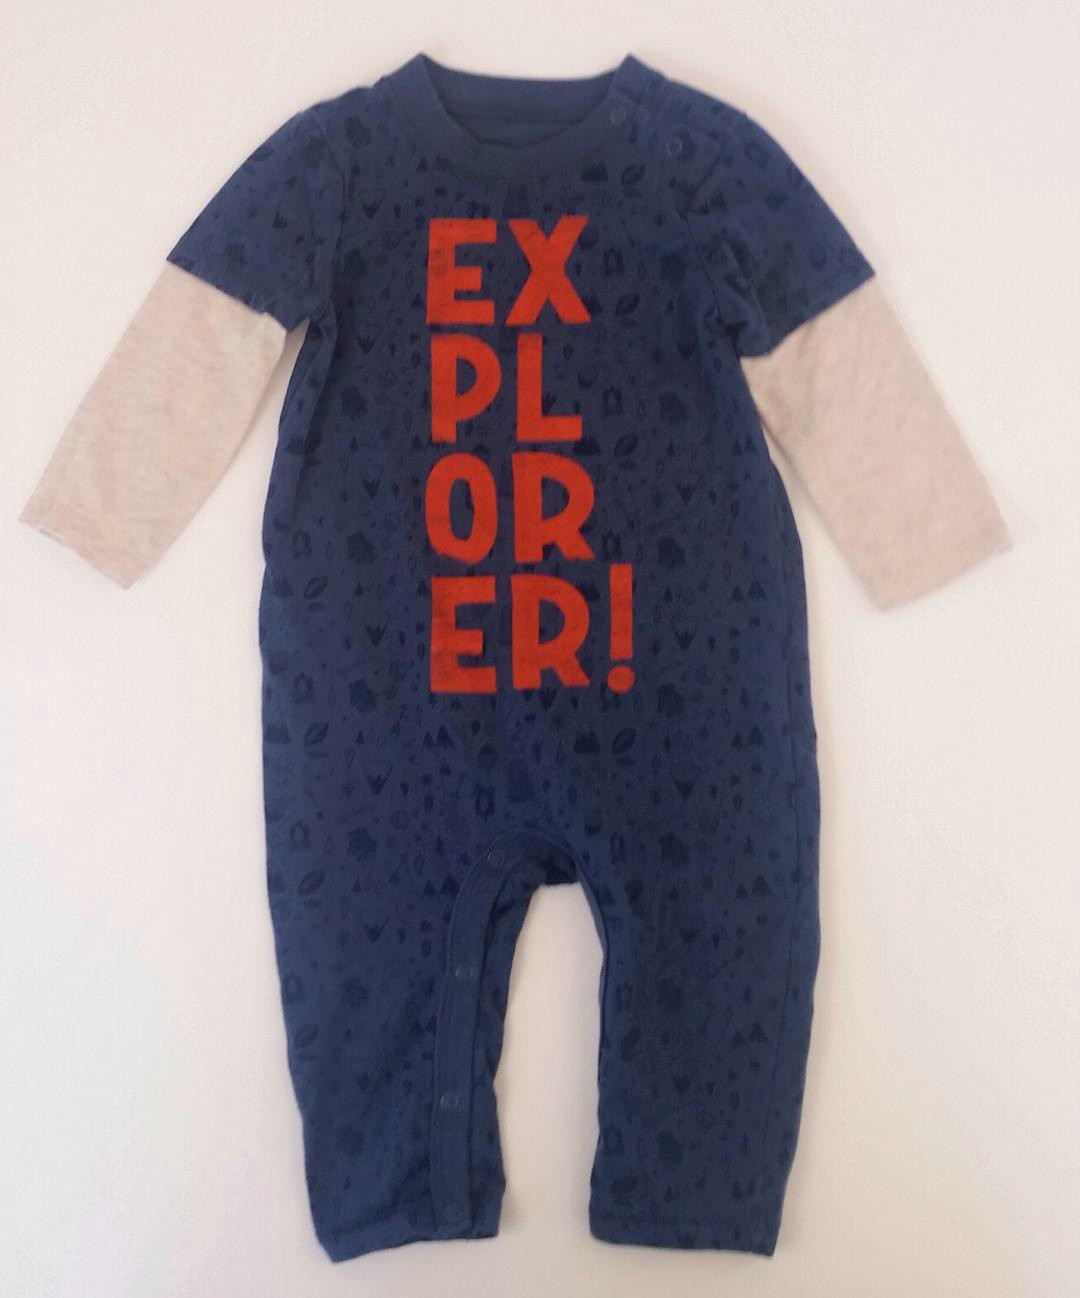 Cat--Jack-6-12-MONTHS-Long-sleeve-Romper_2149397A.jpg